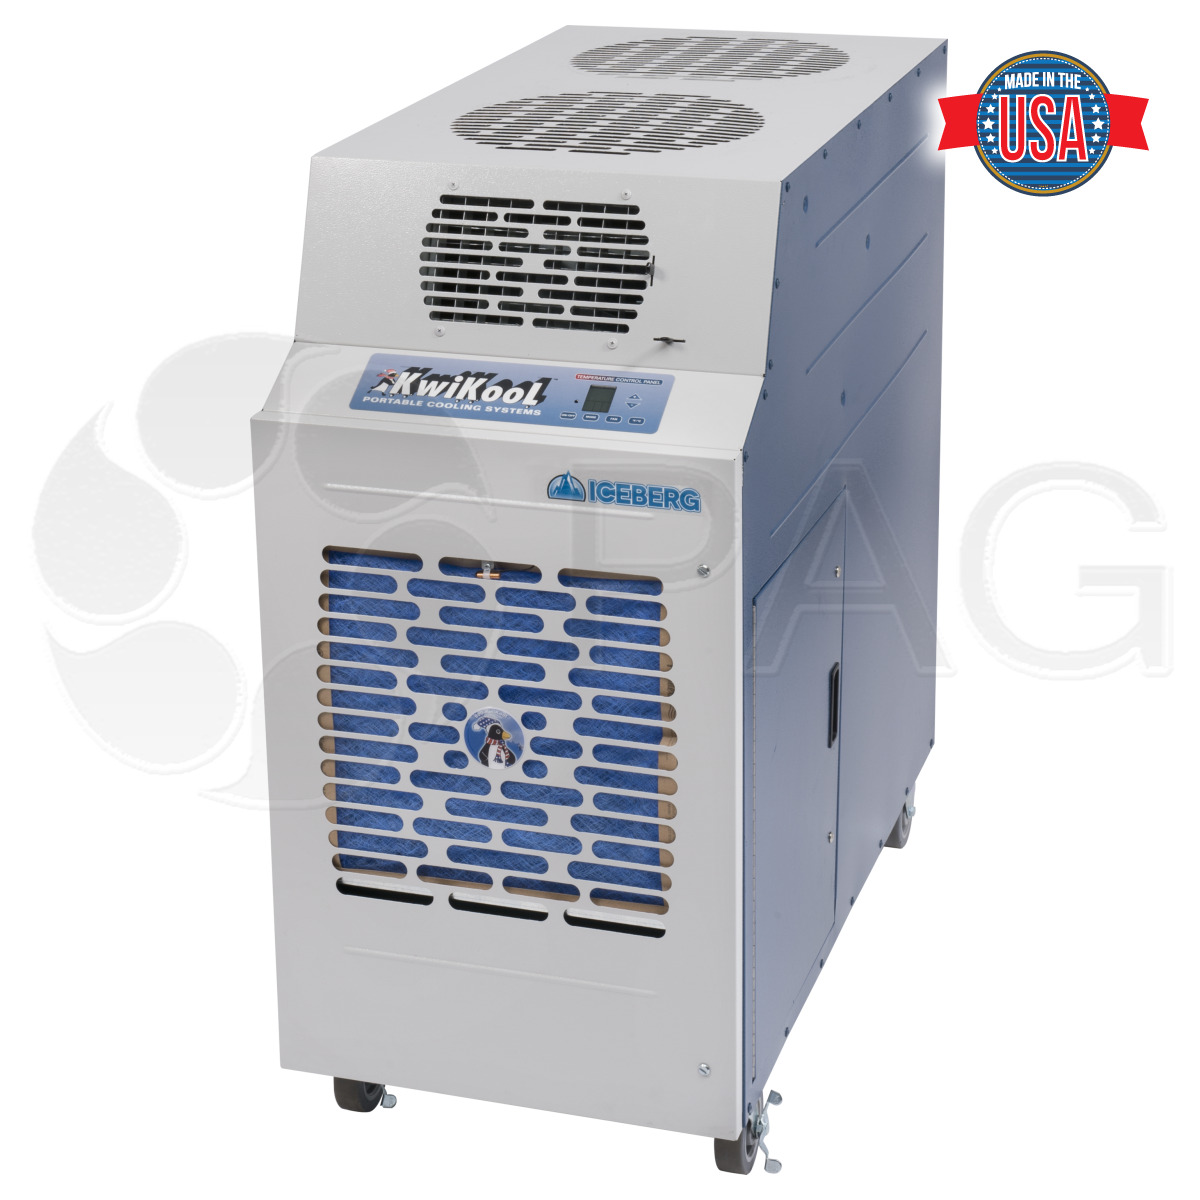 KwiKool KIB2411 portable air conditioner